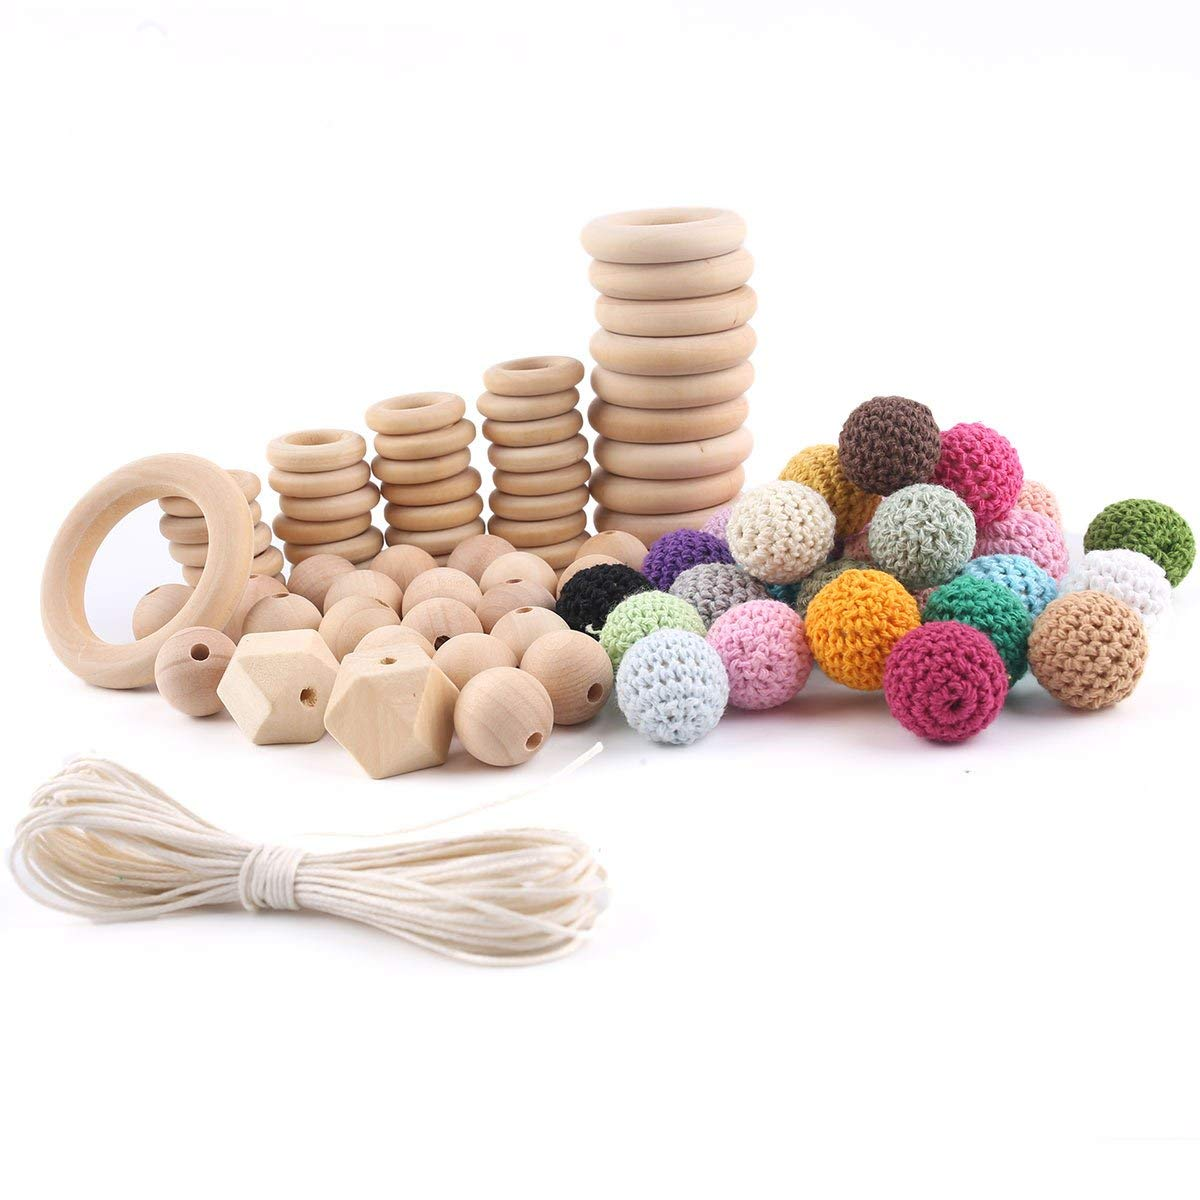 DIY Wooden Rings Crochet Set Diy Nursing Teething Baby Teether Beads Set Eco-friendly Newborn Baby Accessories Cord with Case